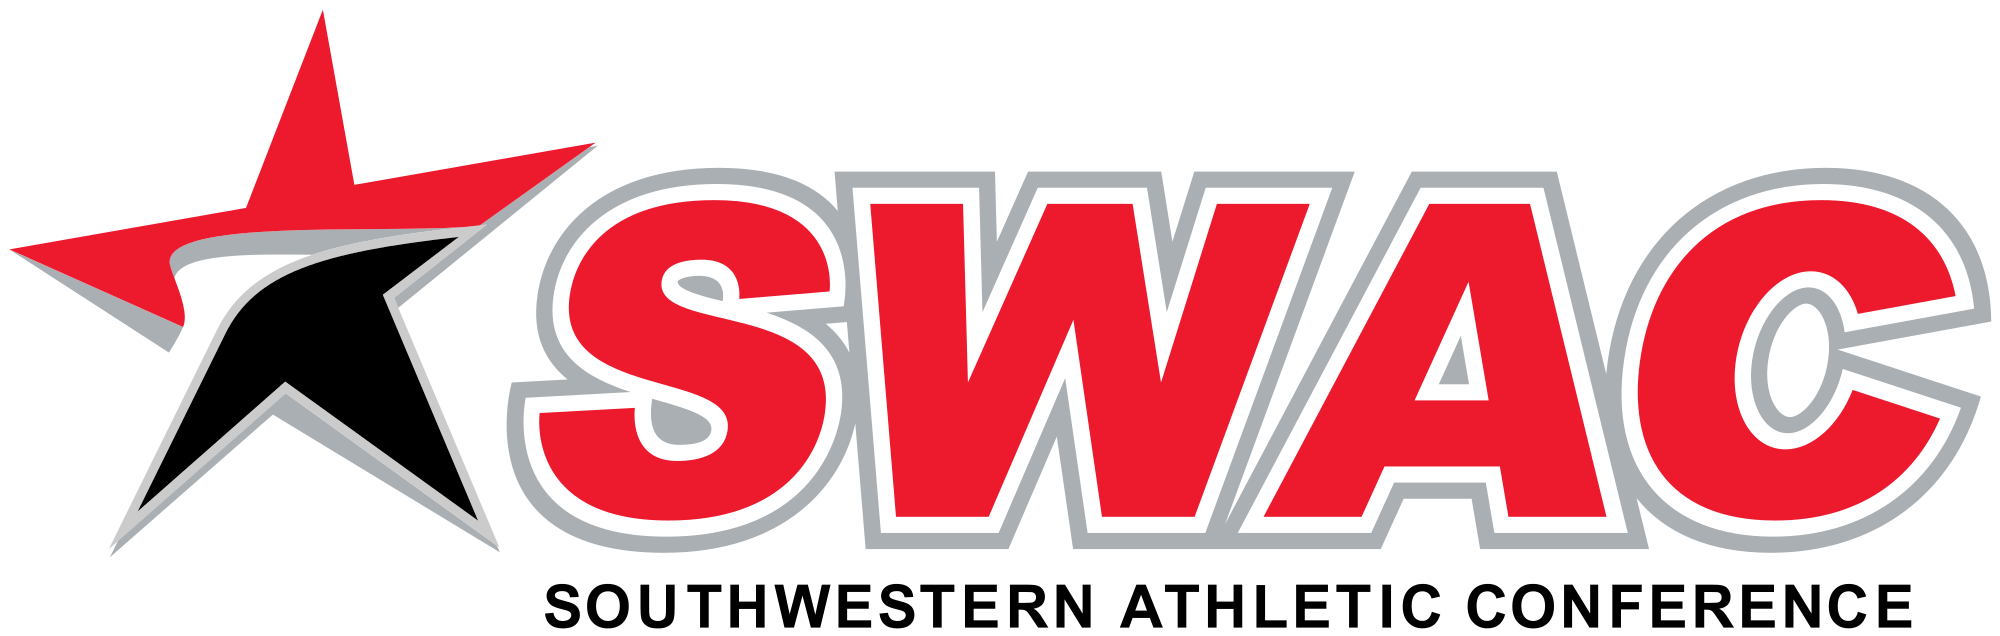 swac-with-letters.png